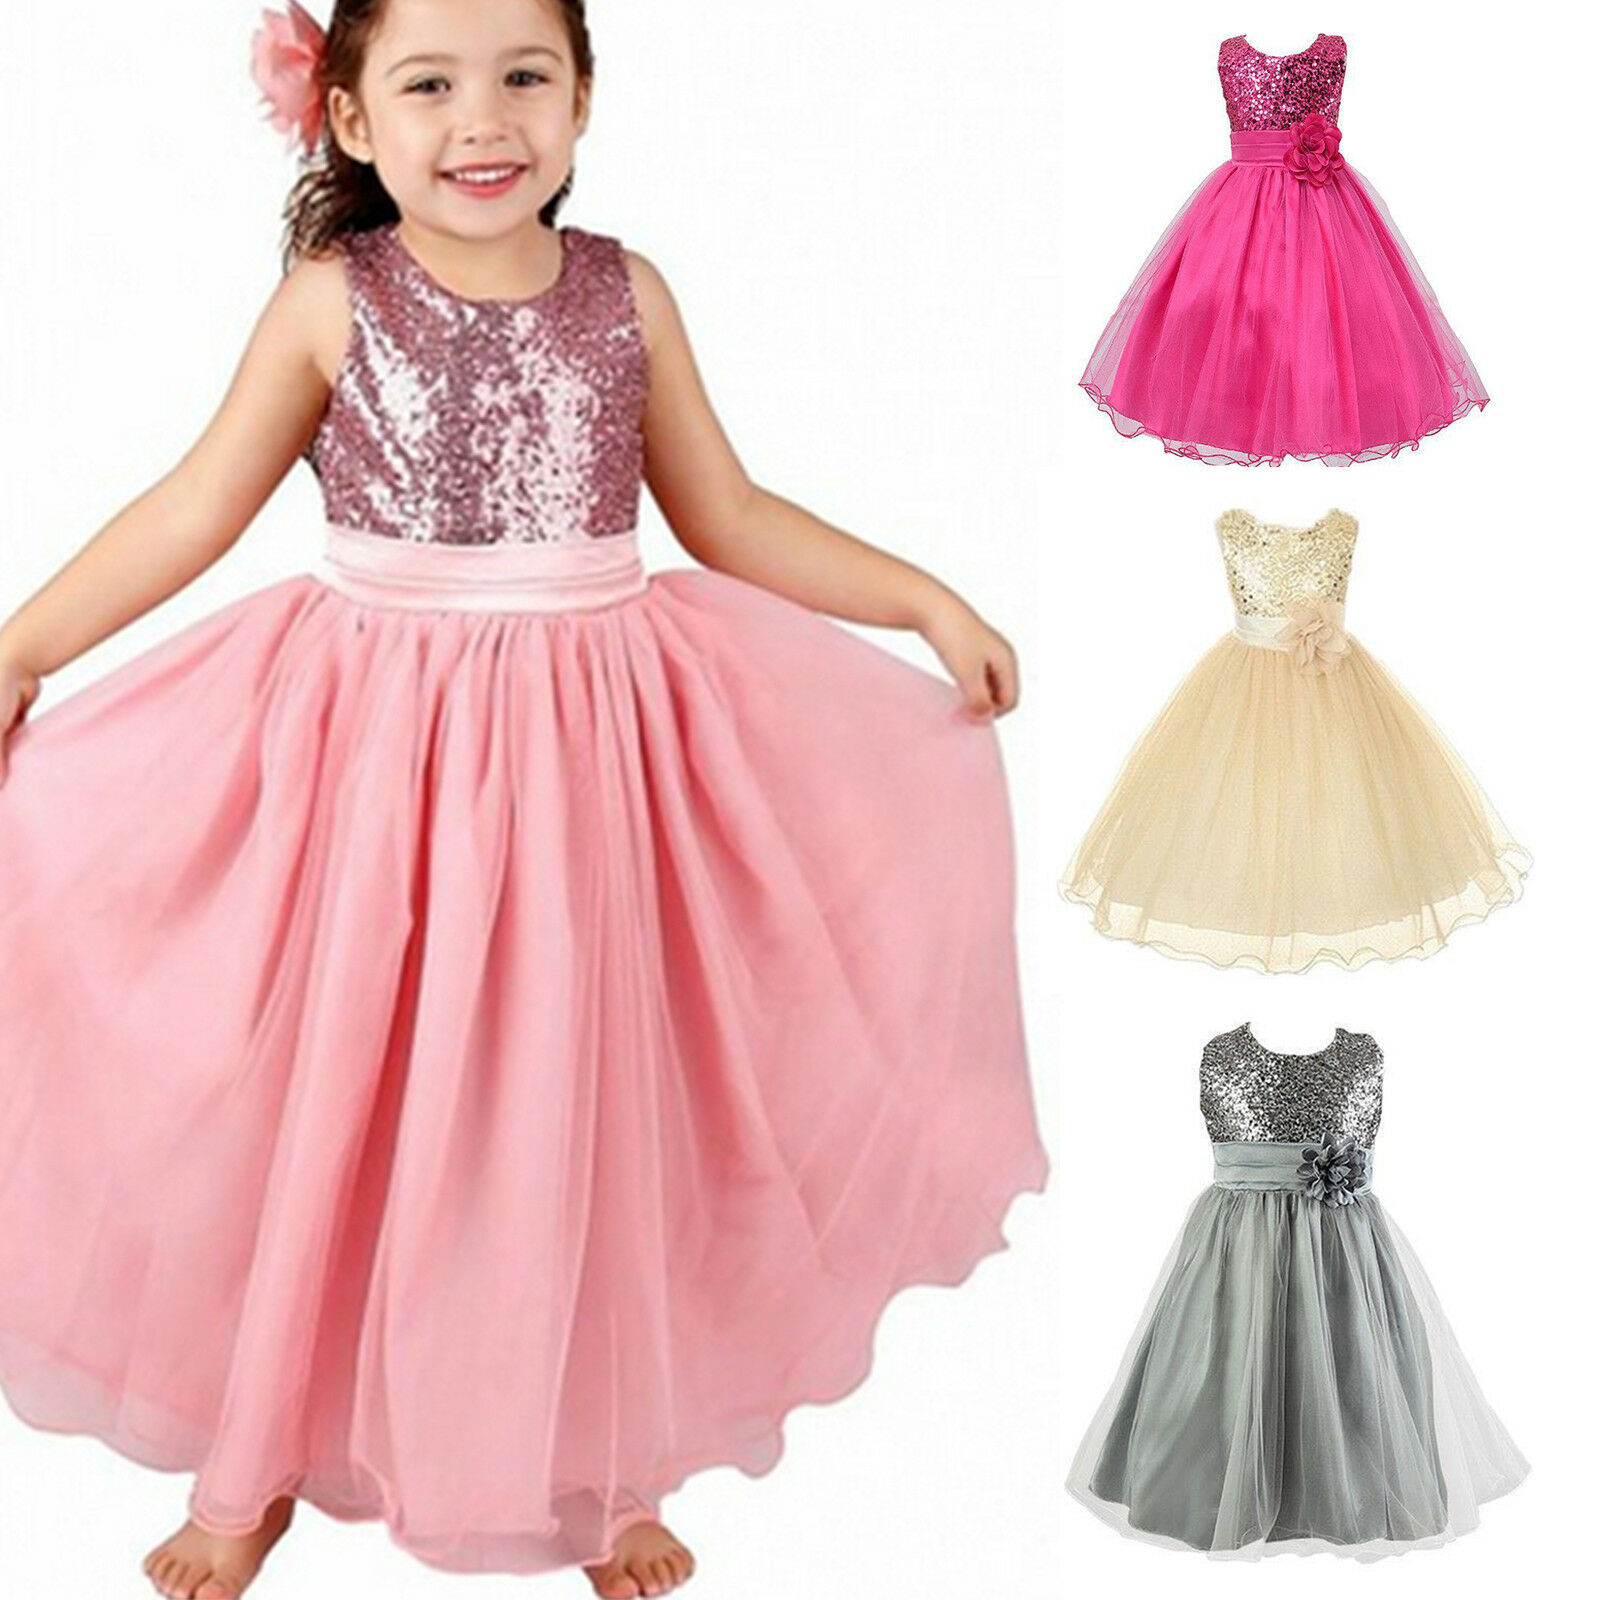 Girls Kids Flower Glitter Princess Dress Prom Pageant Birthday Party Ball Gown